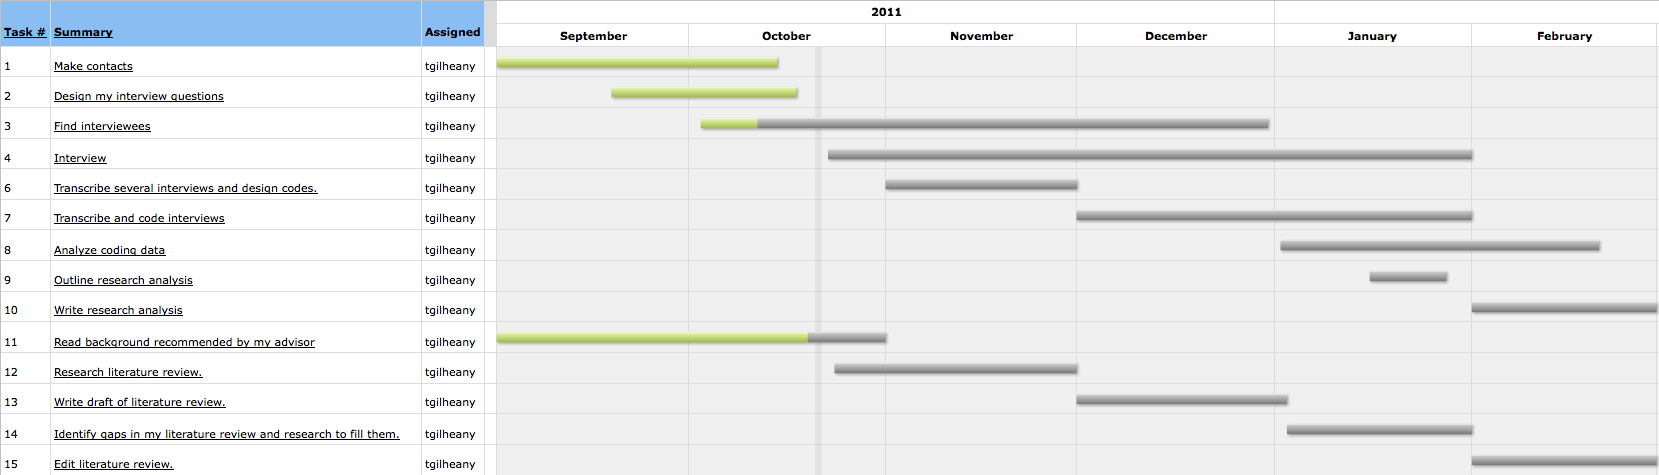 Gantt chart from middletown to the middle east gantt nvjuhfo Images